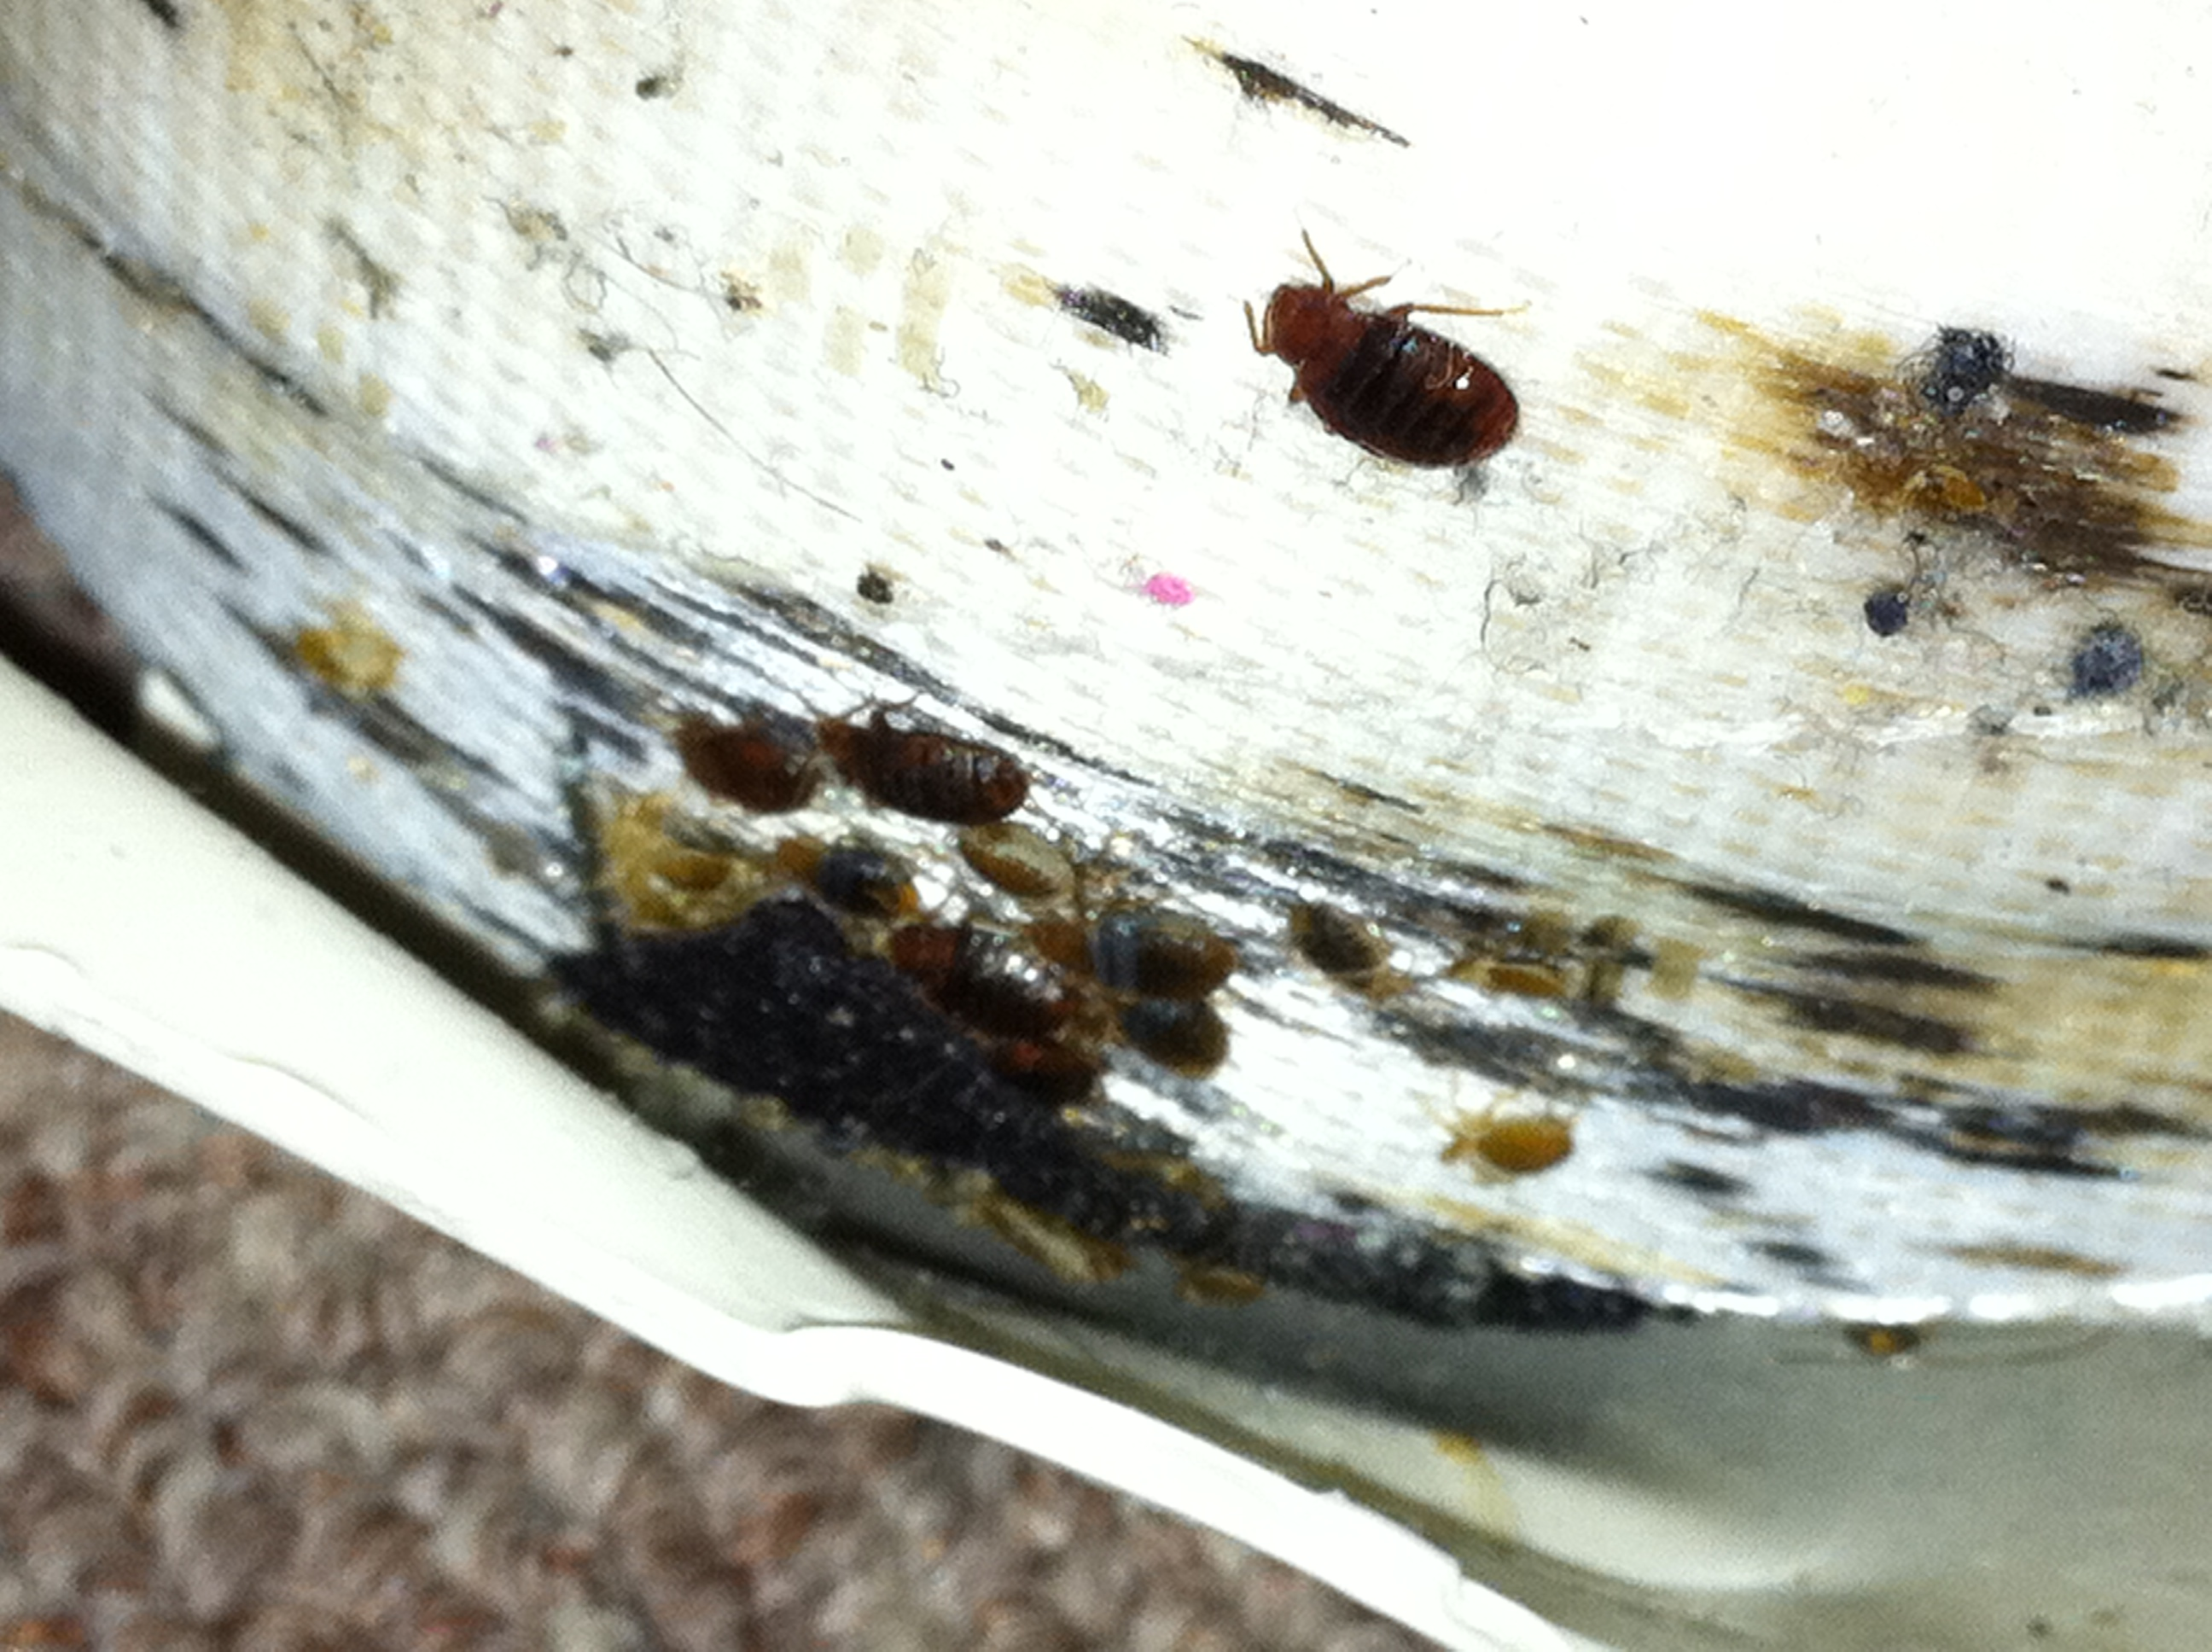 Bed Bug Help 28 Images Man Seeks Community S Help To Fight Bed Bugs My Cleaning Brown